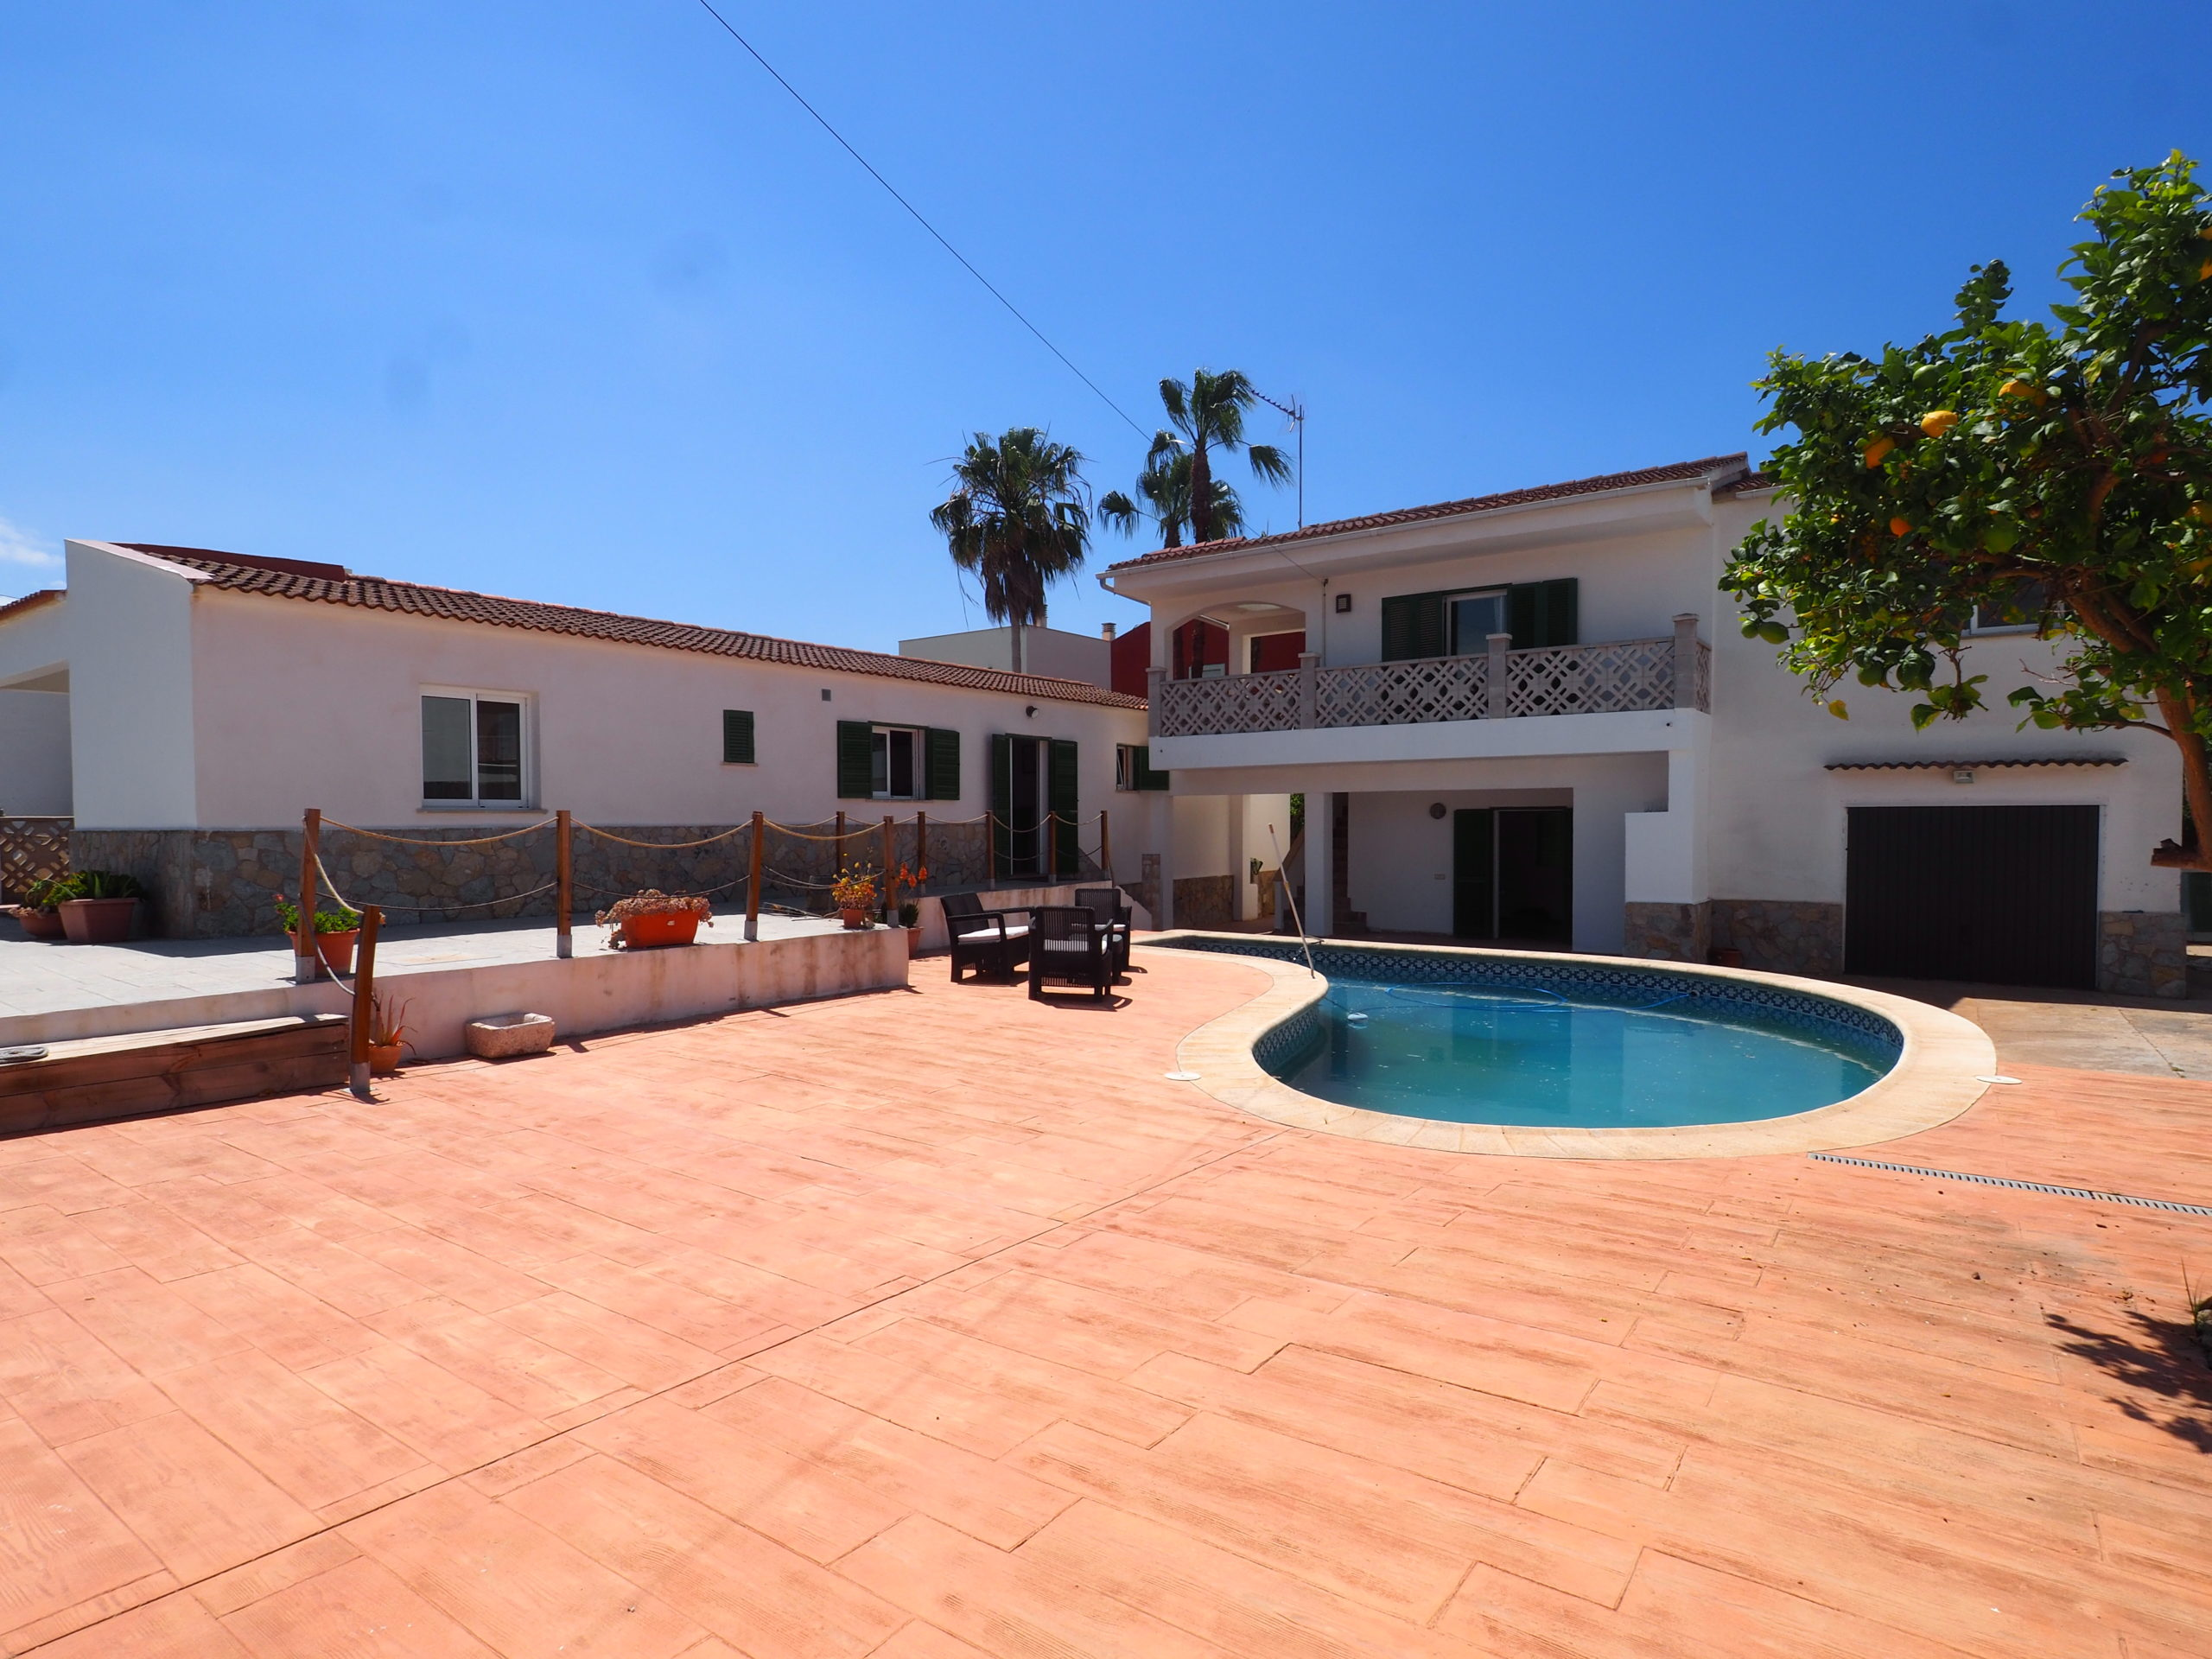 Villa with pool and a guest apartment in Santa Ponsa area, close to Port Adriano